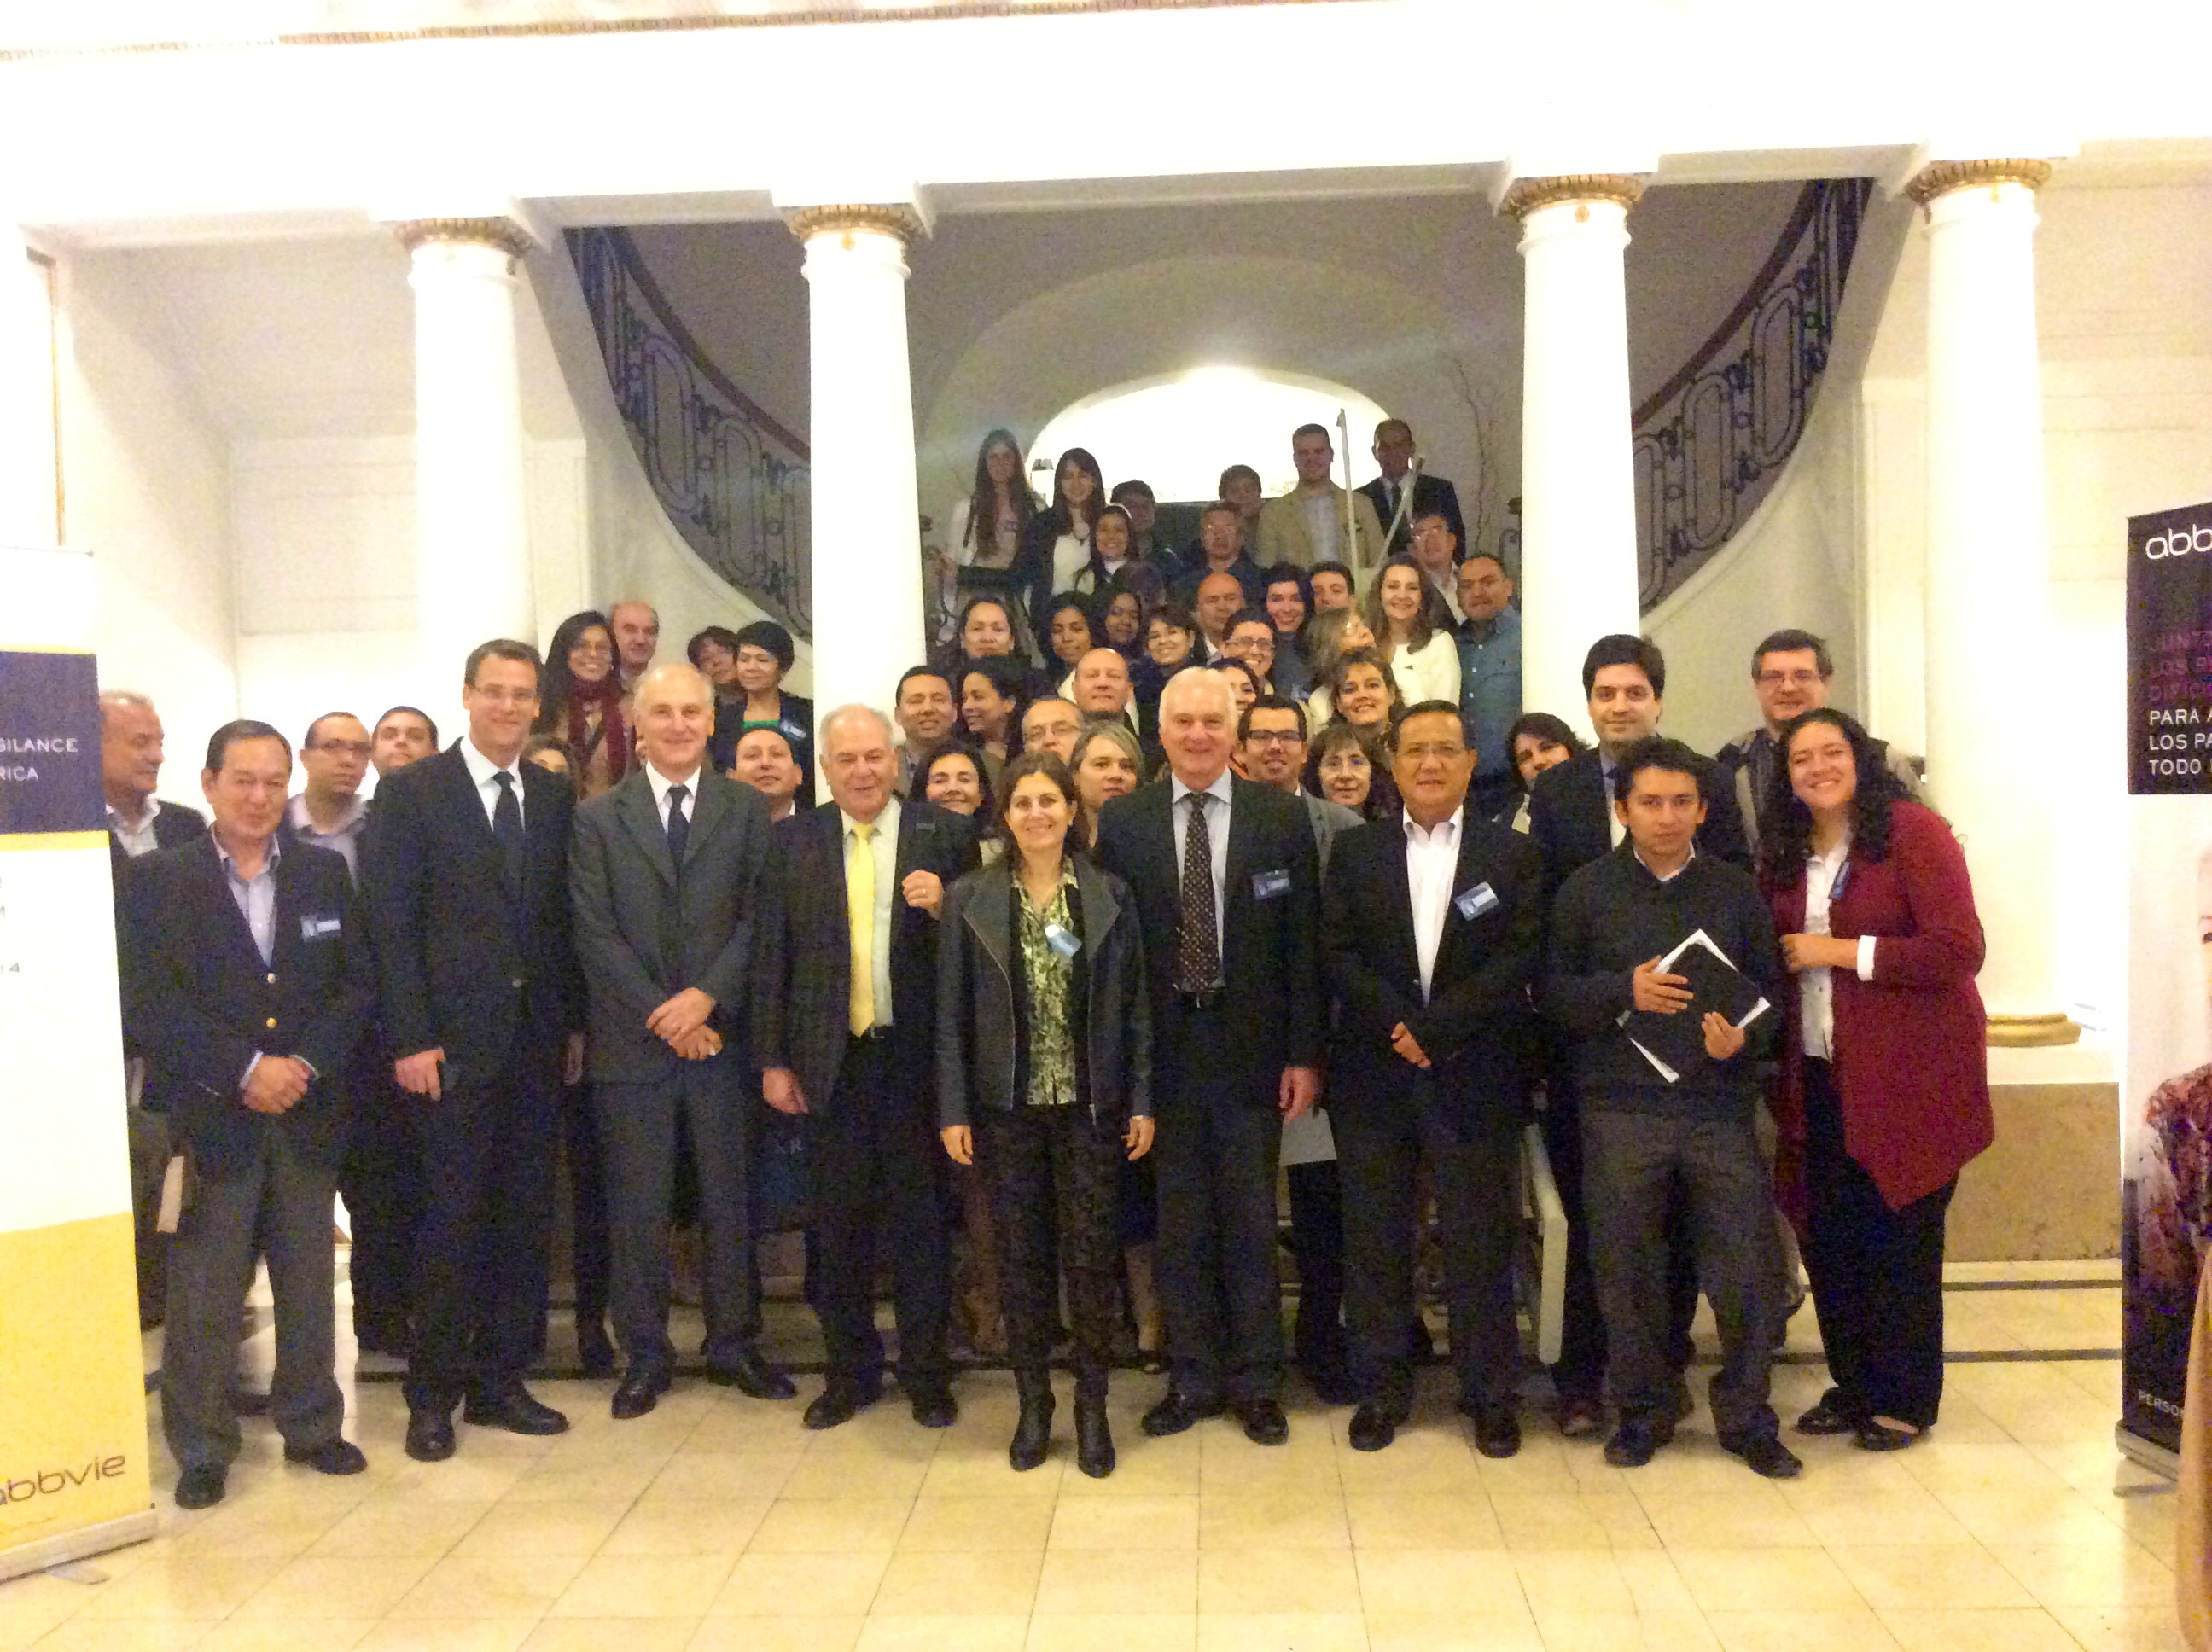 Group photo: Buenos Aires, Argentina